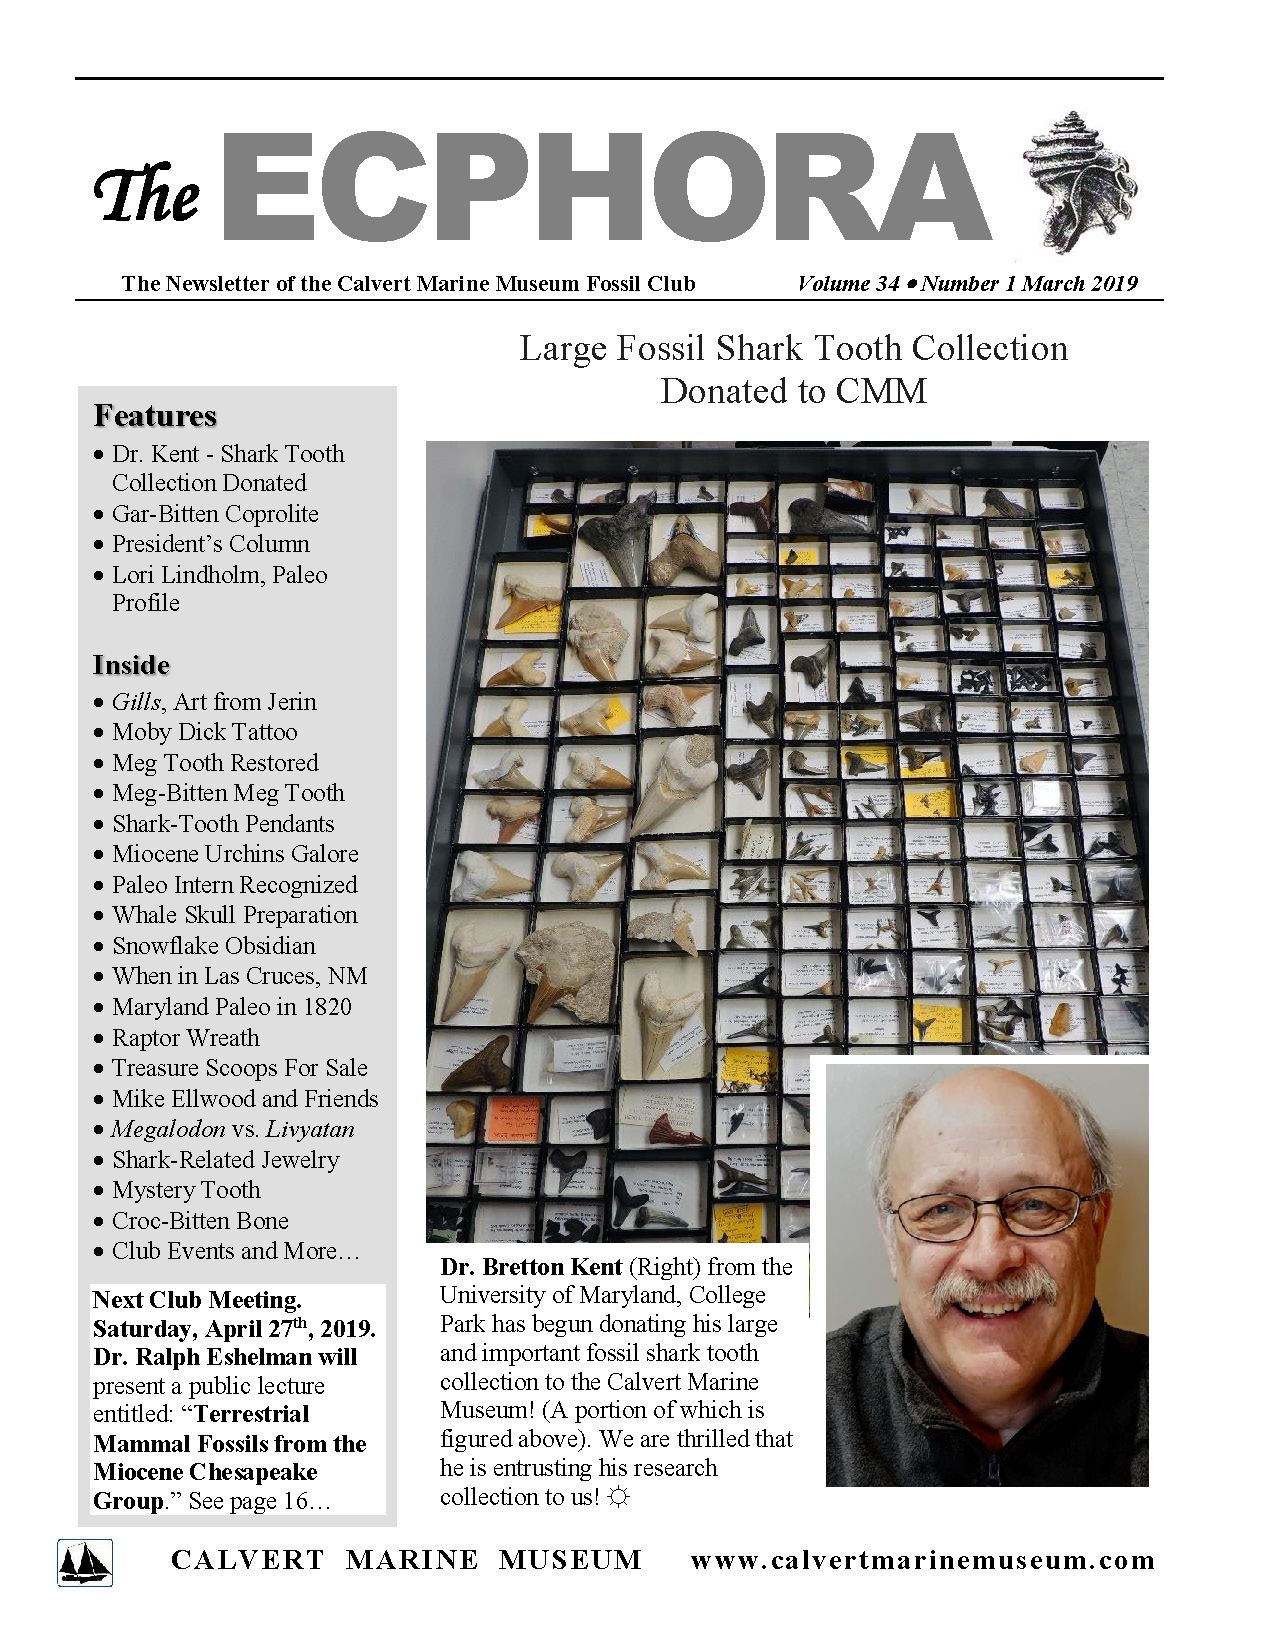 Ecphora, March 2019 Cover